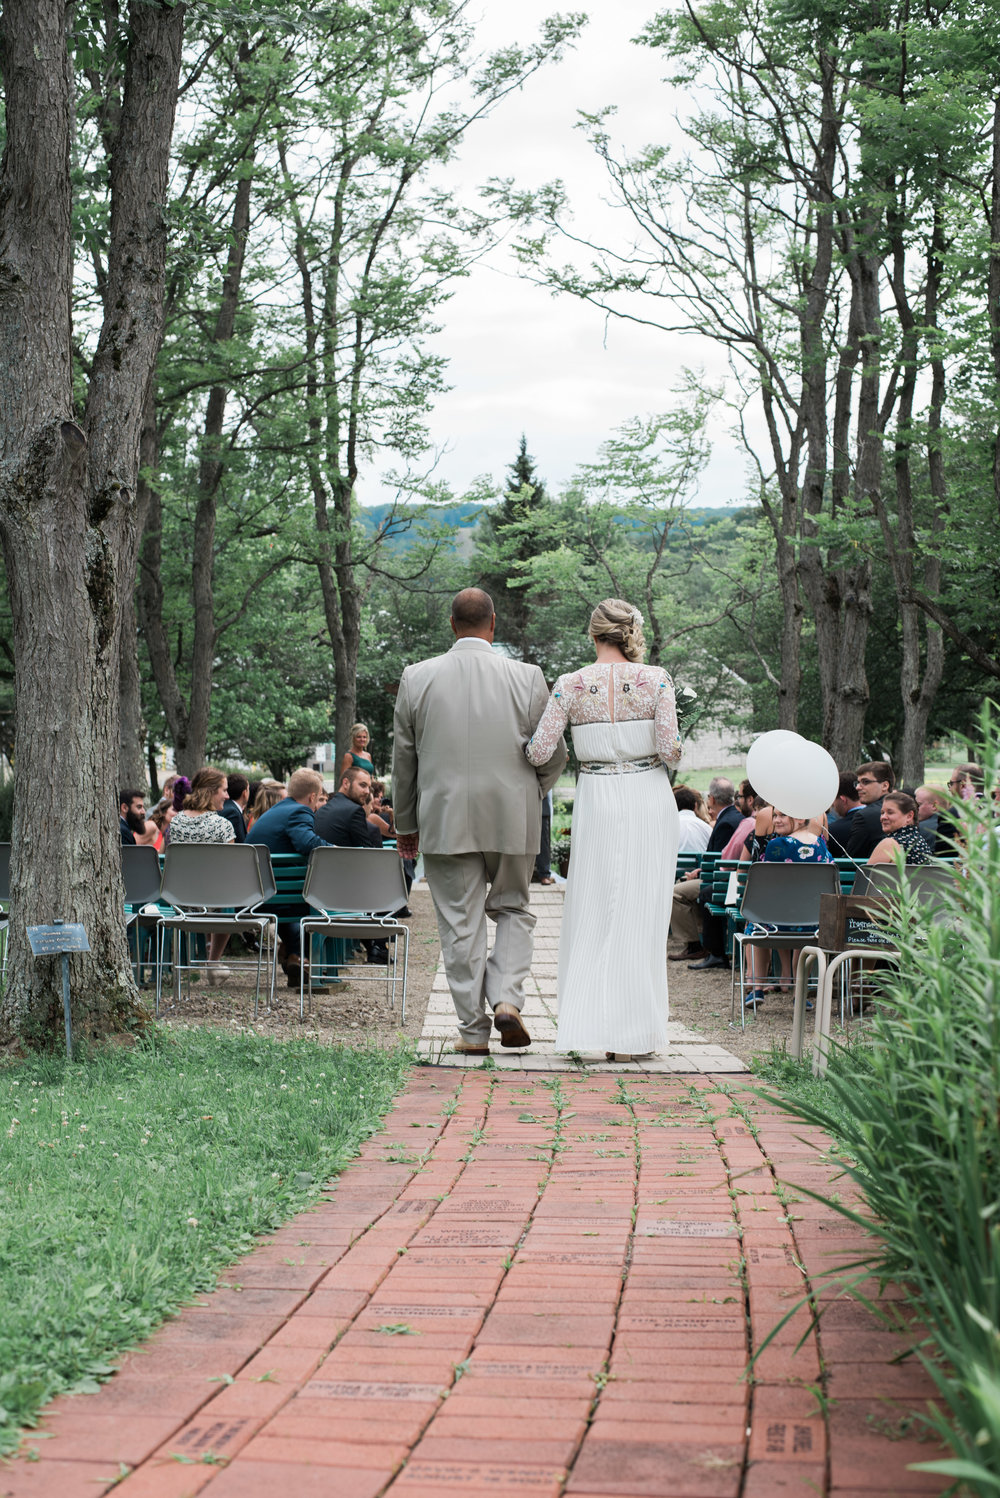 Allison and Matt Wedding Photography in Ellicottville ny by Stefan Ludwig Photography-163.jpg